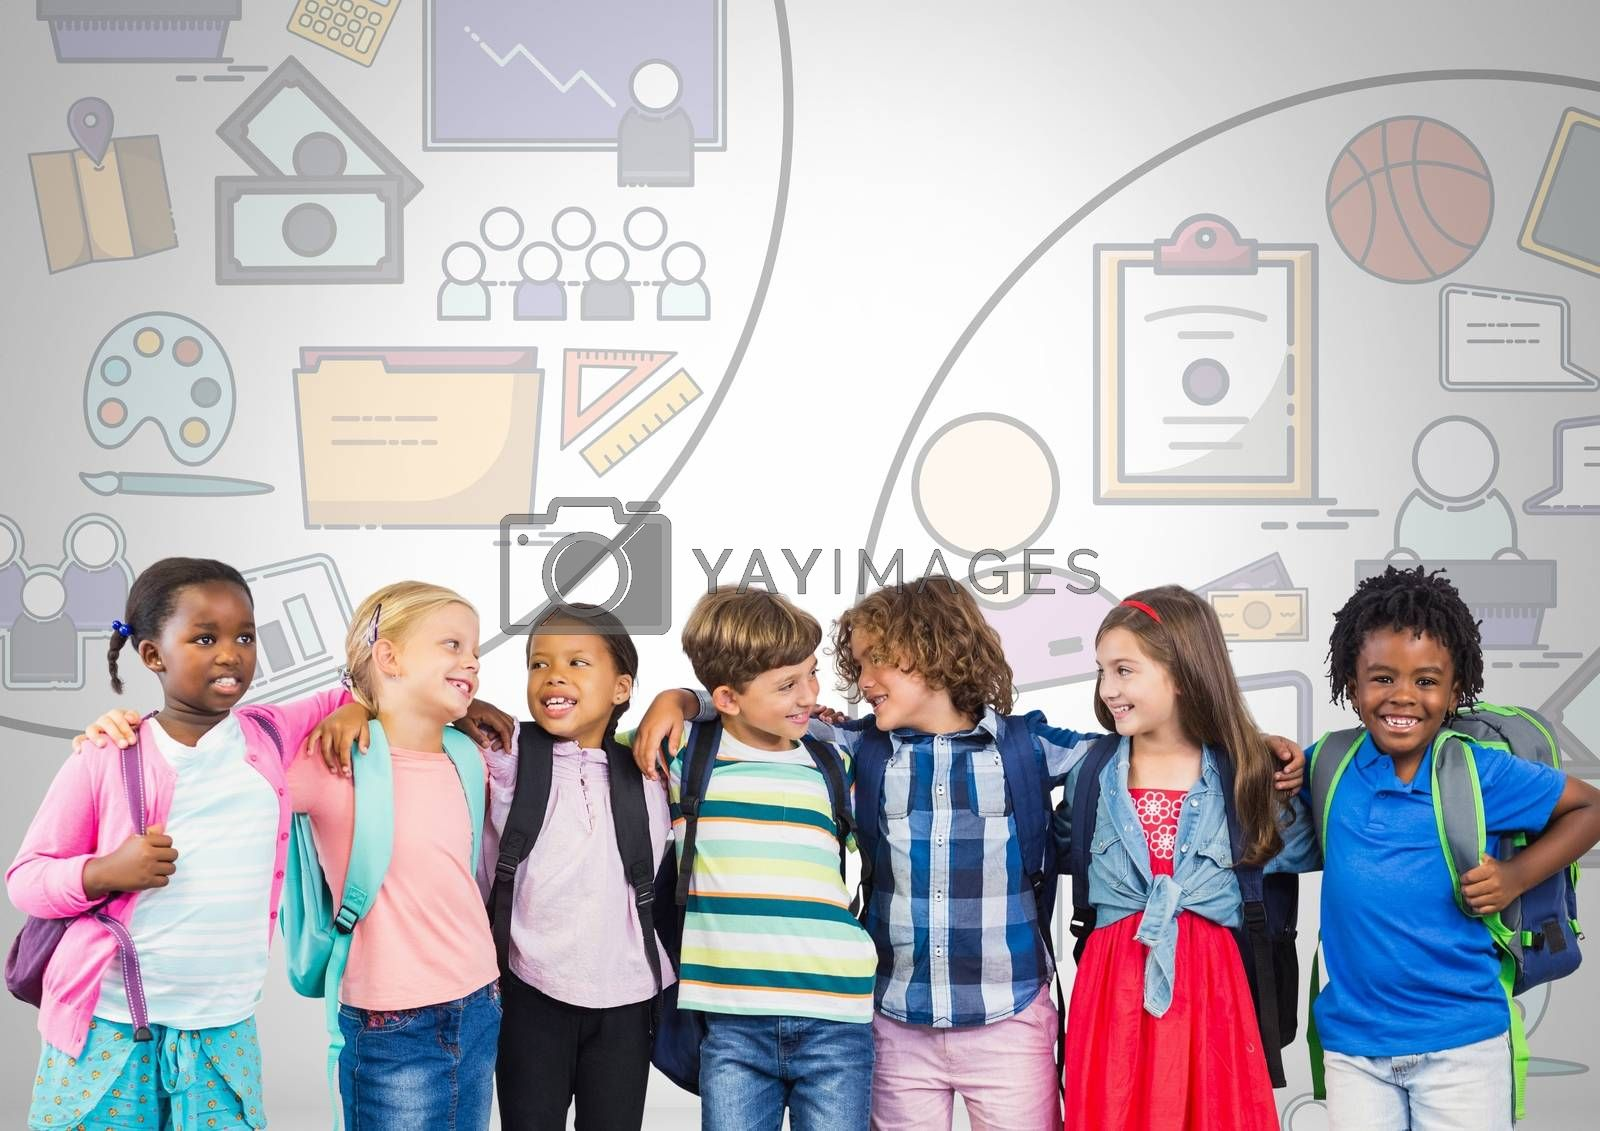 Digital composite of Group of kids with education graphics